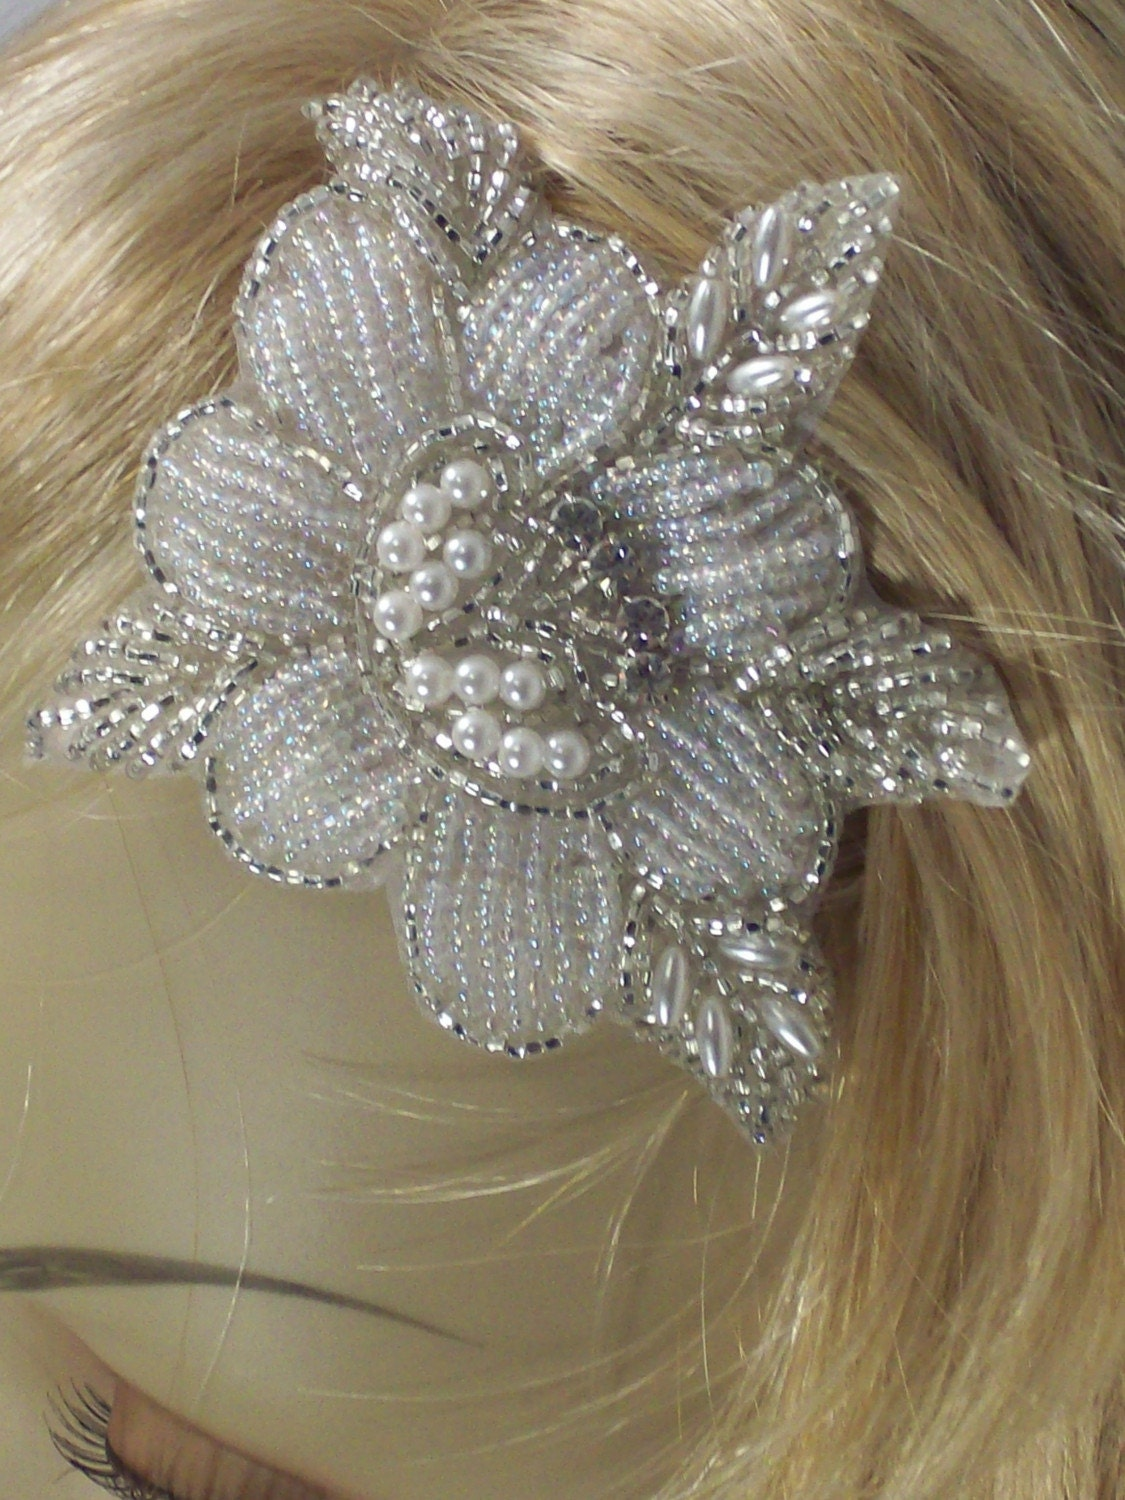 Vintage Silver and White Flower Applique with Swarovski Crystals - On Hair Comb - LAST ONE LADIES